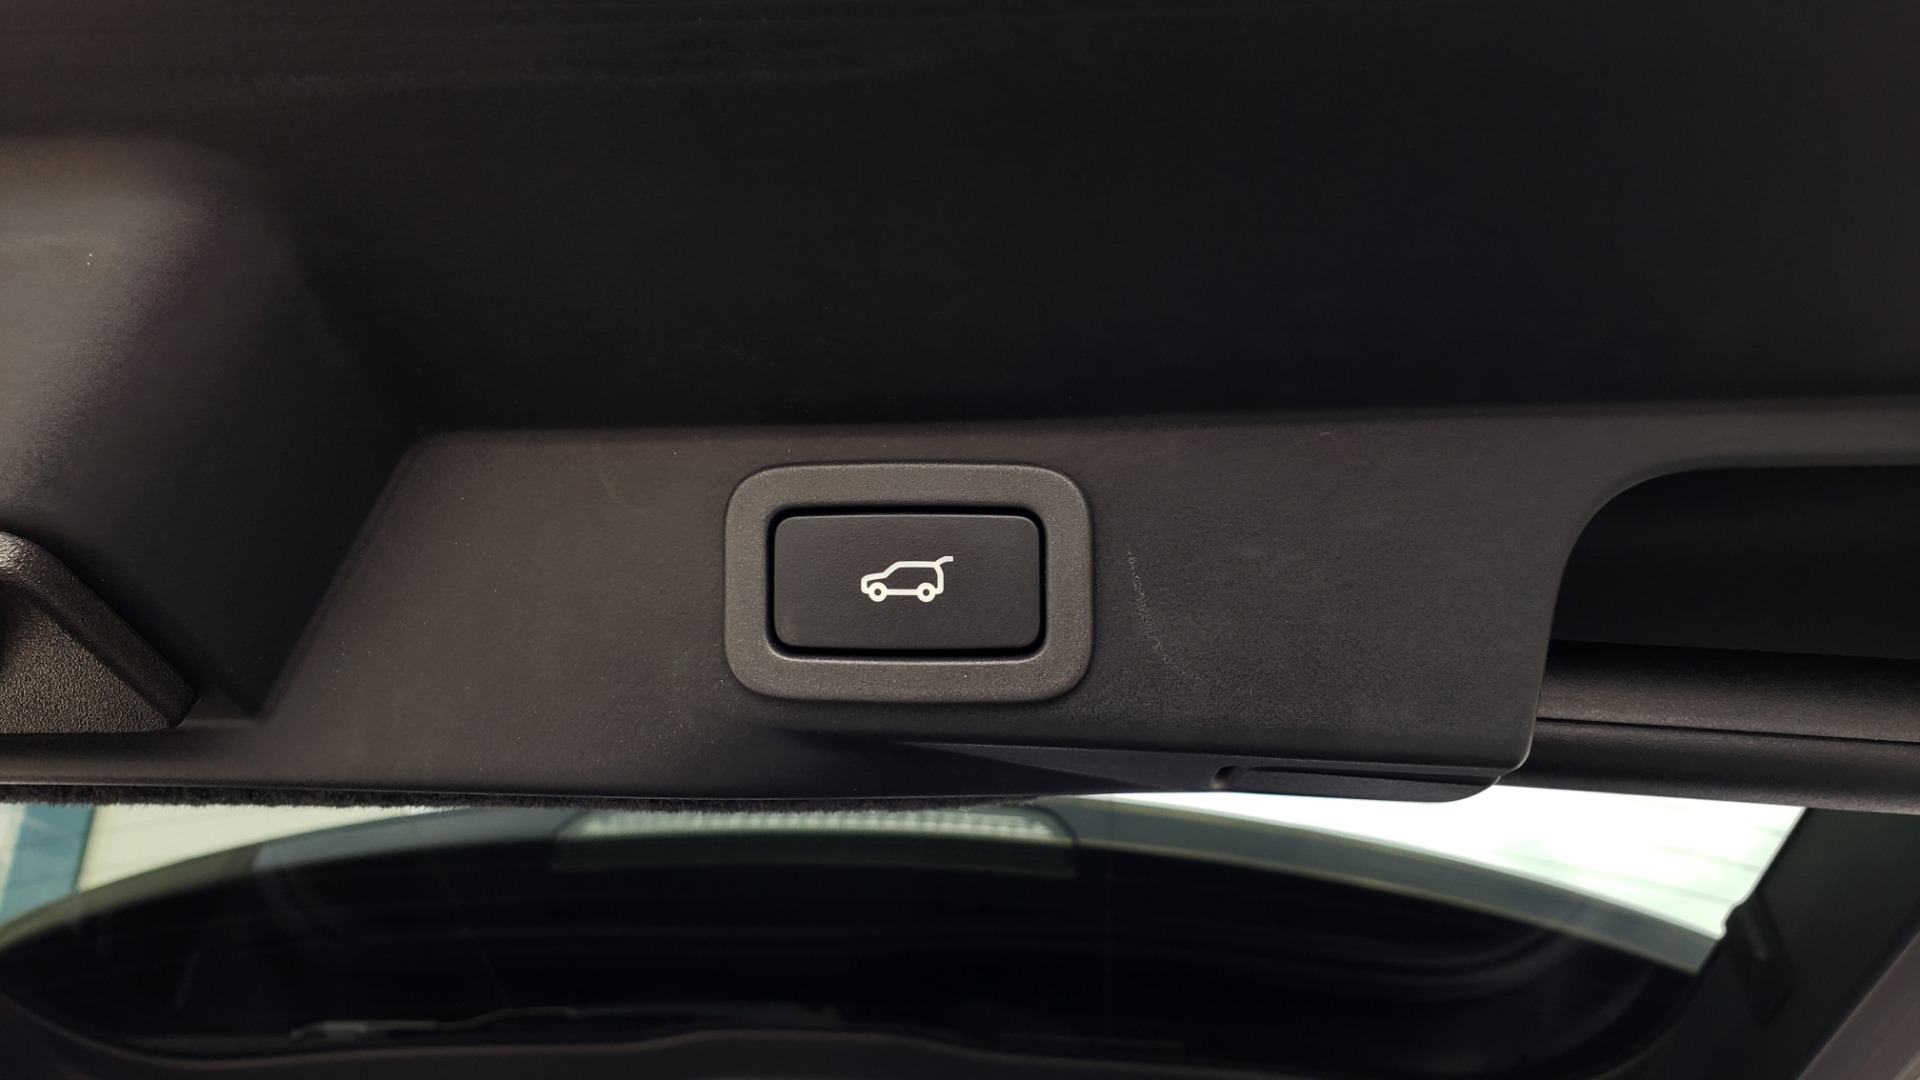 Used 2017 Land Rover RANGE ROVER SPORT HSE DYNAMIC / SC V6 / NAV / MERIDIAN / PANO-ROOF / REARVIEW for sale Sold at Formula Imports in Charlotte NC 28227 21